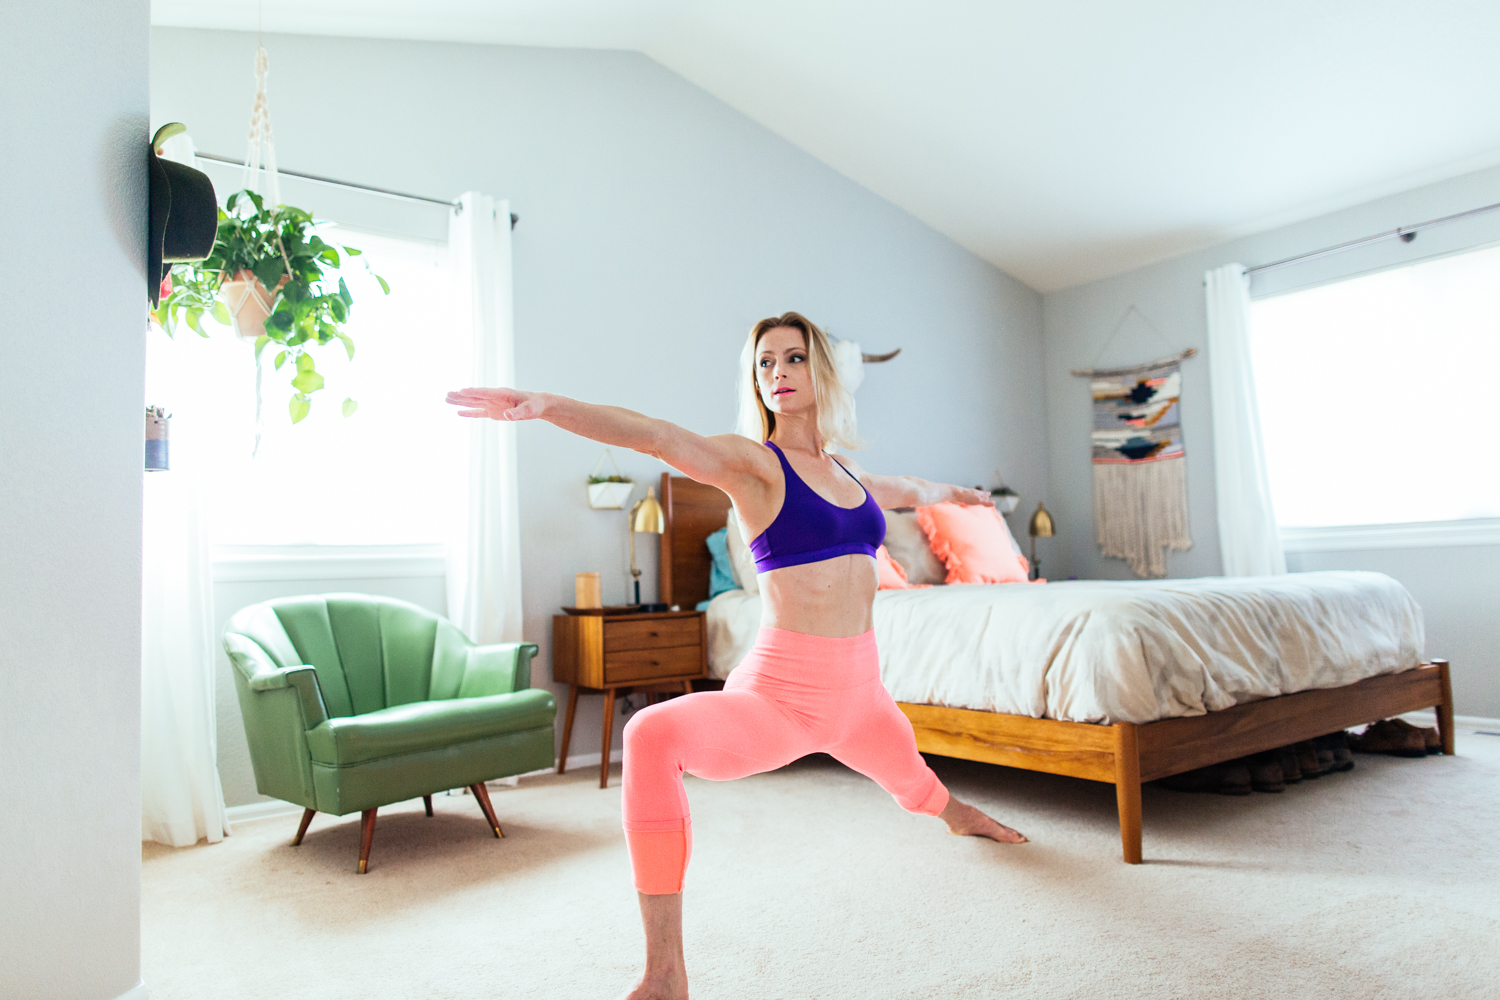 yogashoot-homesession-amylacyphotography-denver-34.jpg